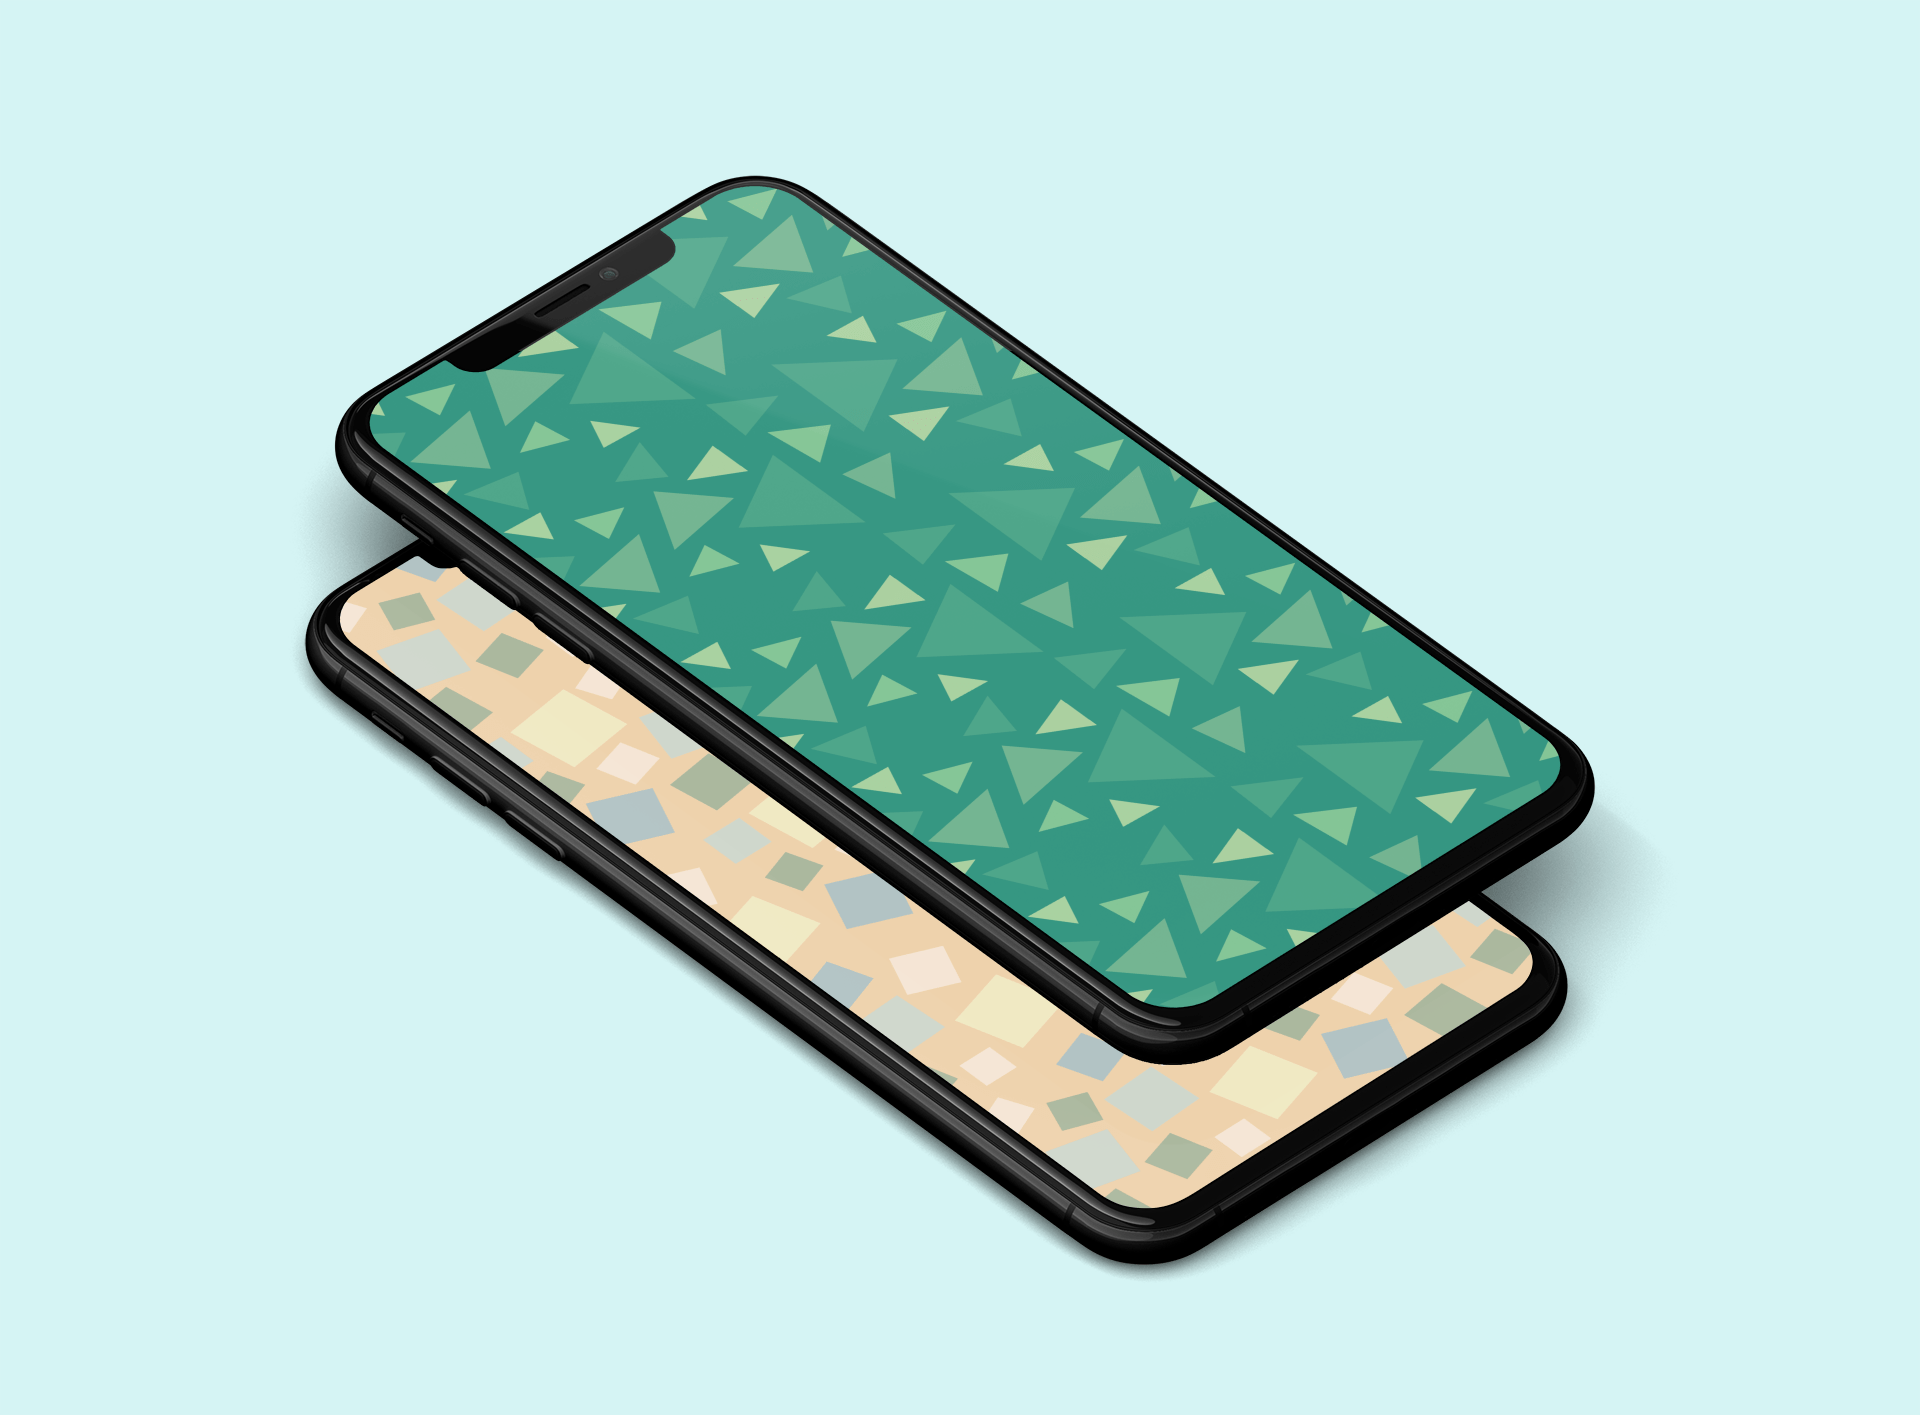 Animal Crossing iPhone wallpaper Matt MacPherson iDownloadblog mockup